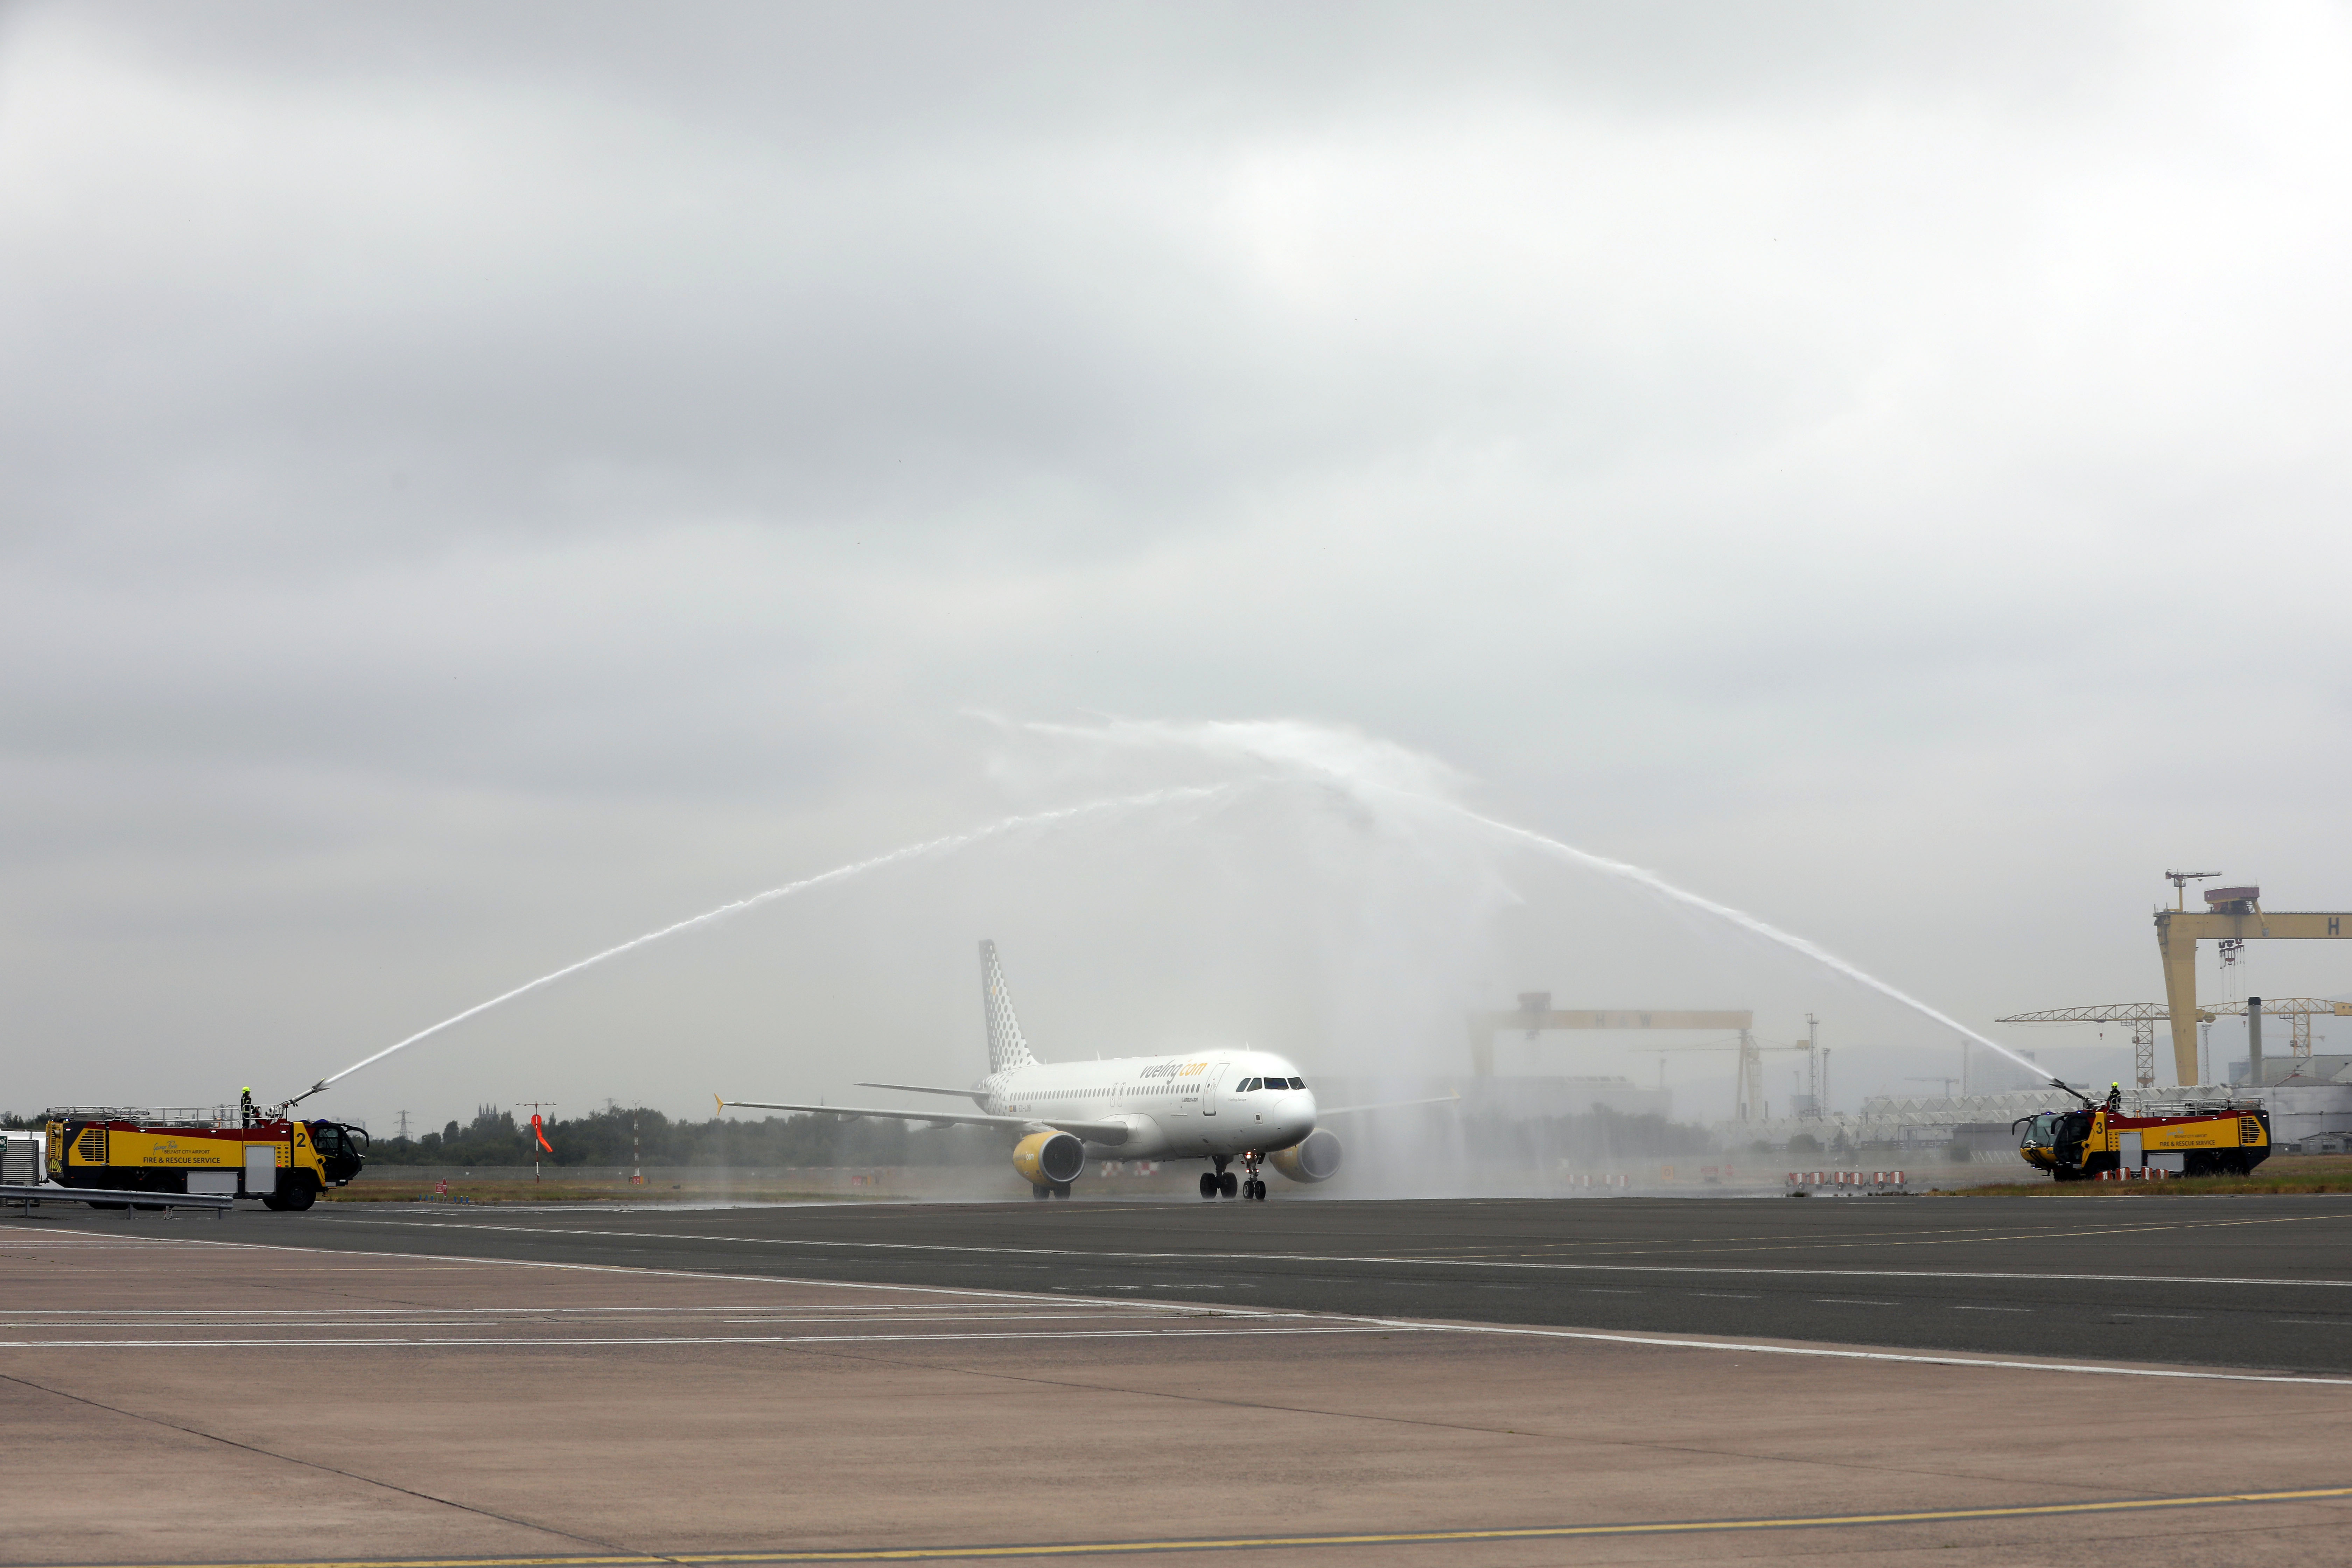 A water cannon salute greets Vueling's inaugural flight from Barcelona